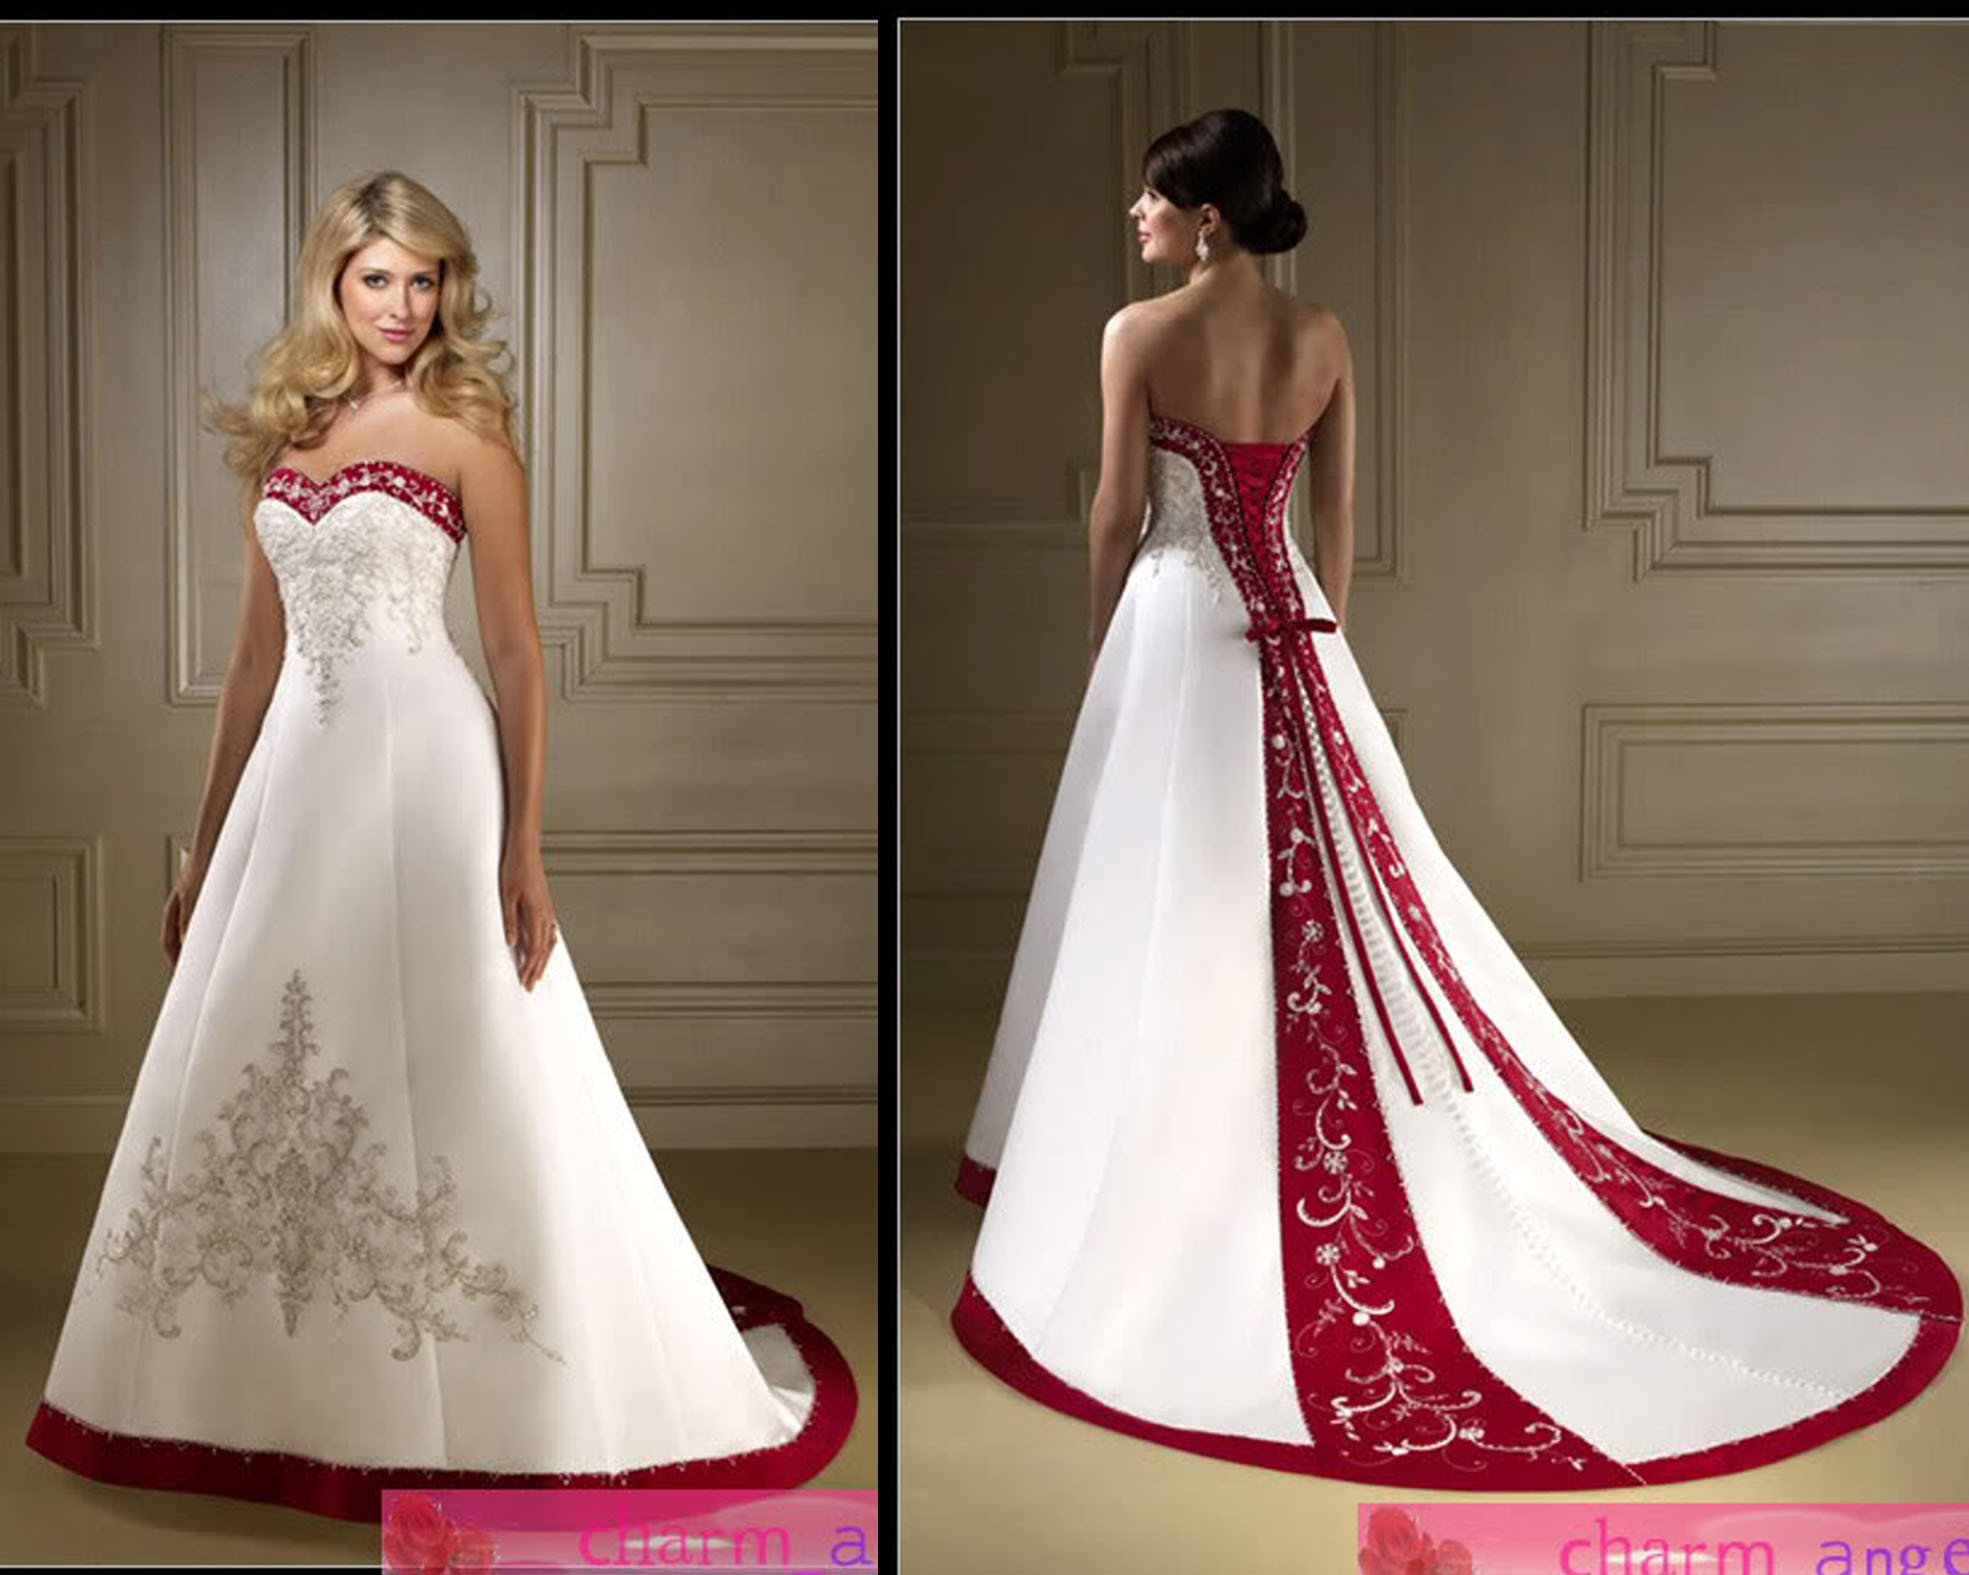 wedding dress from china newhairstylesformen2014com With wedding dress from china